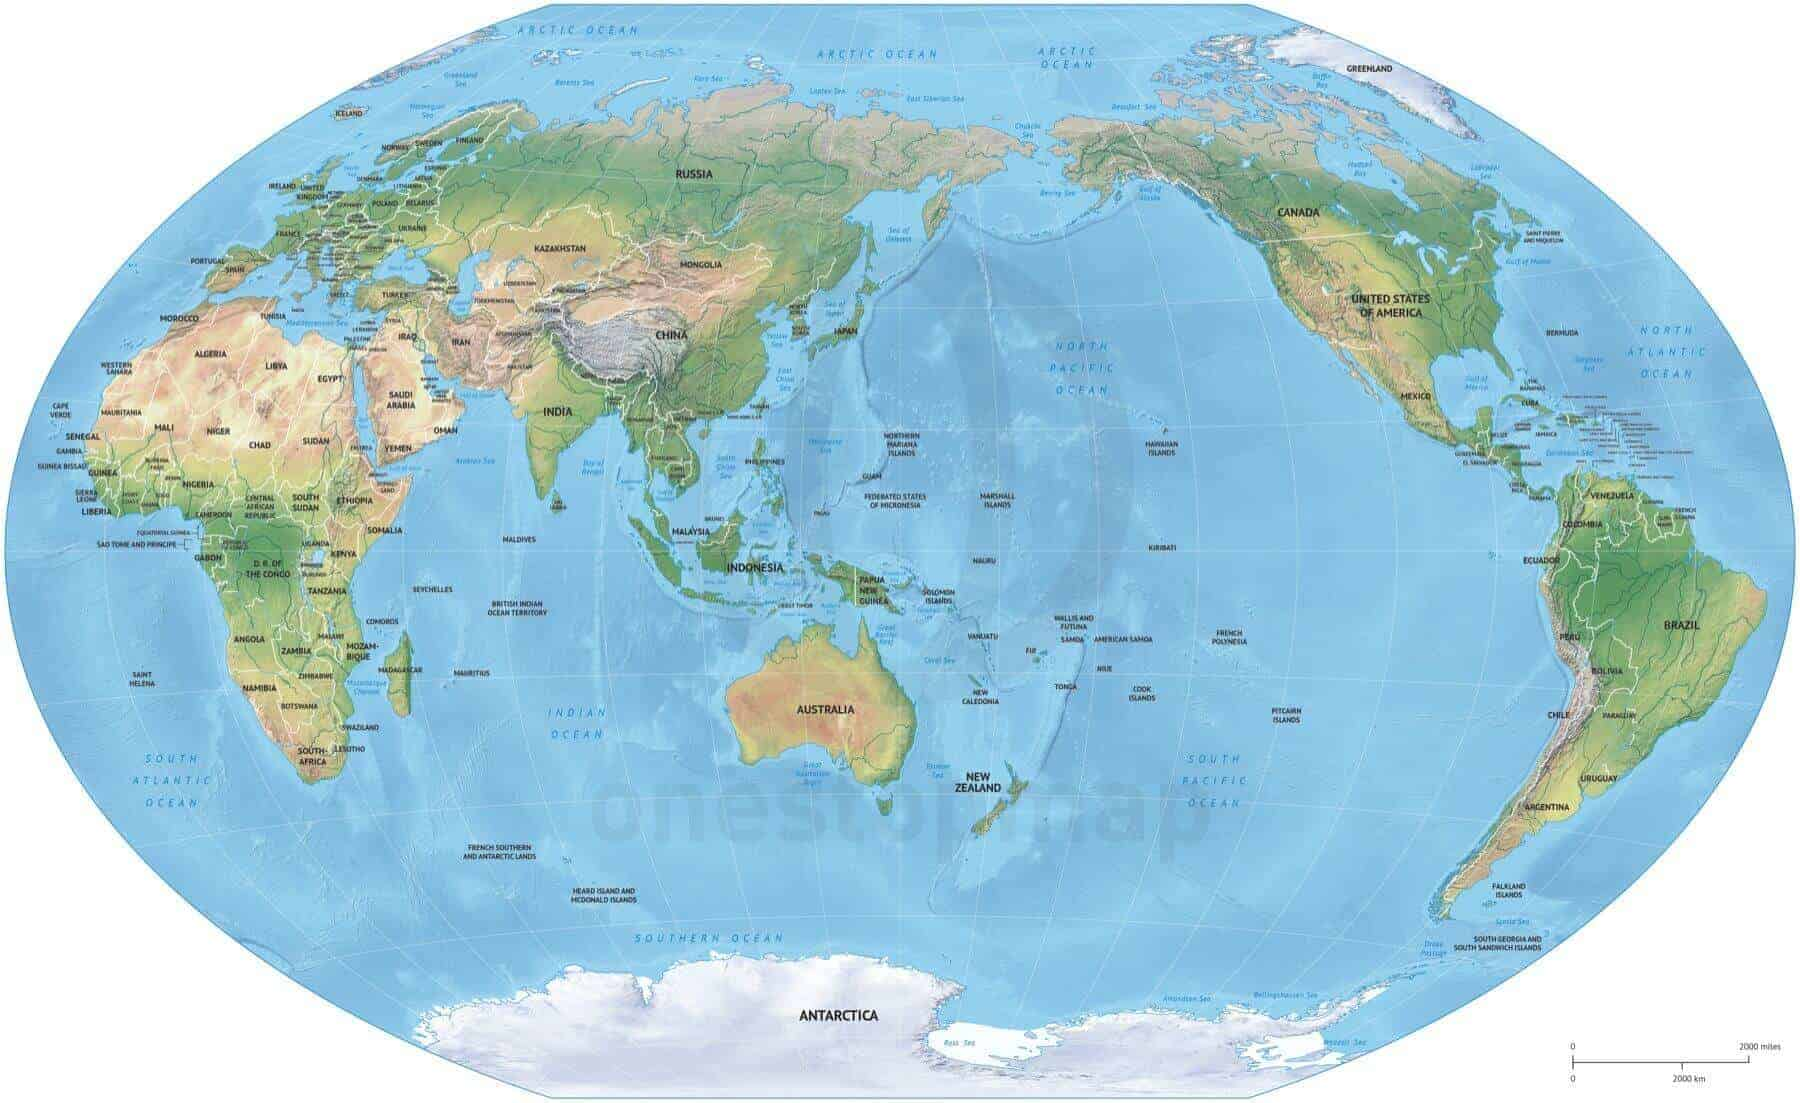 Vector map world relief winkel tripel asia australia one stop map map of world political shaded relief winkel tripel asia australia centered gumiabroncs Images